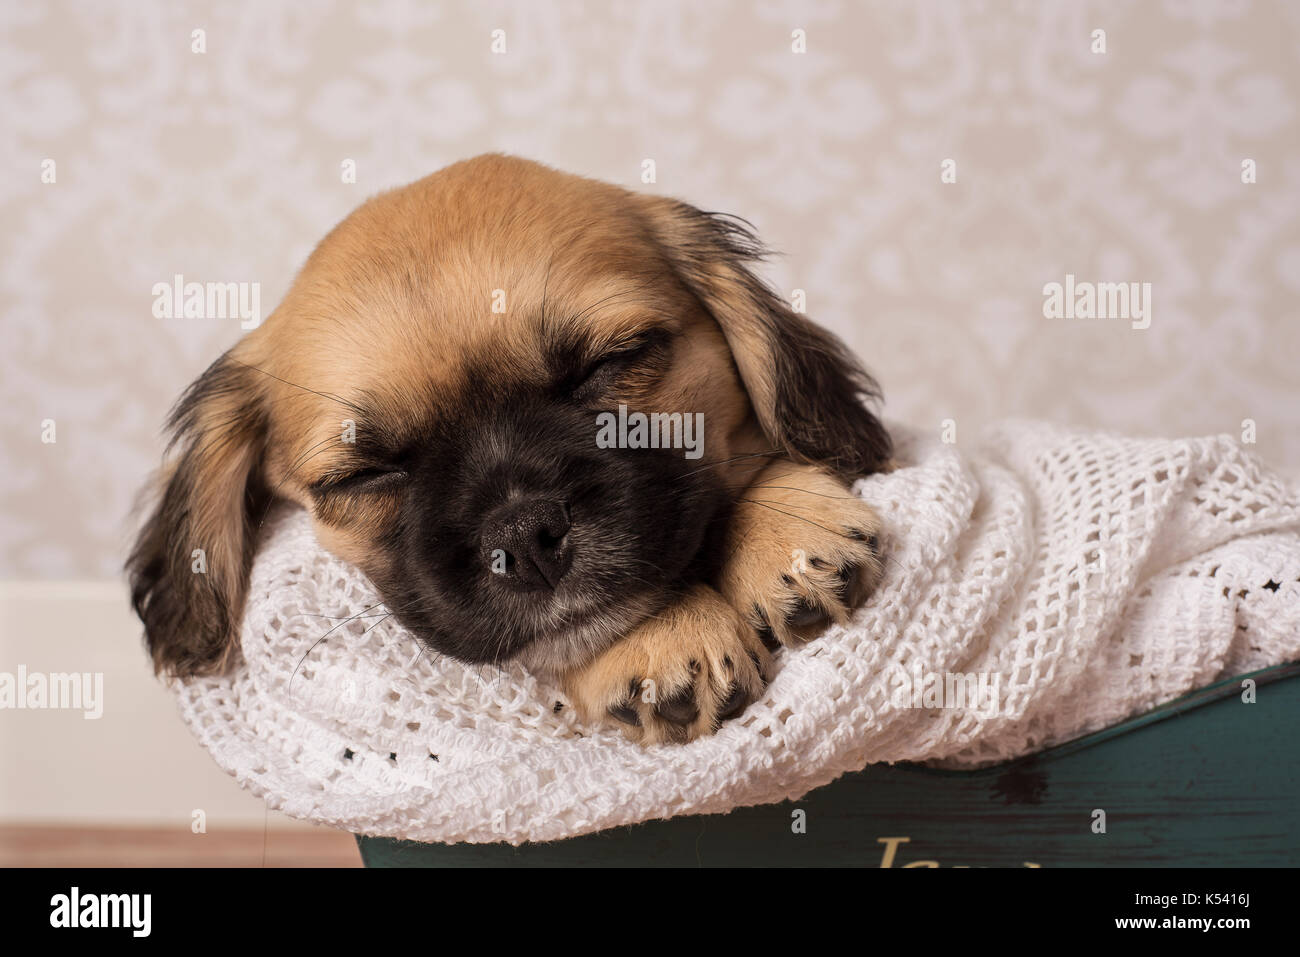 Cute tan and black puppy sleeping - Stock Image